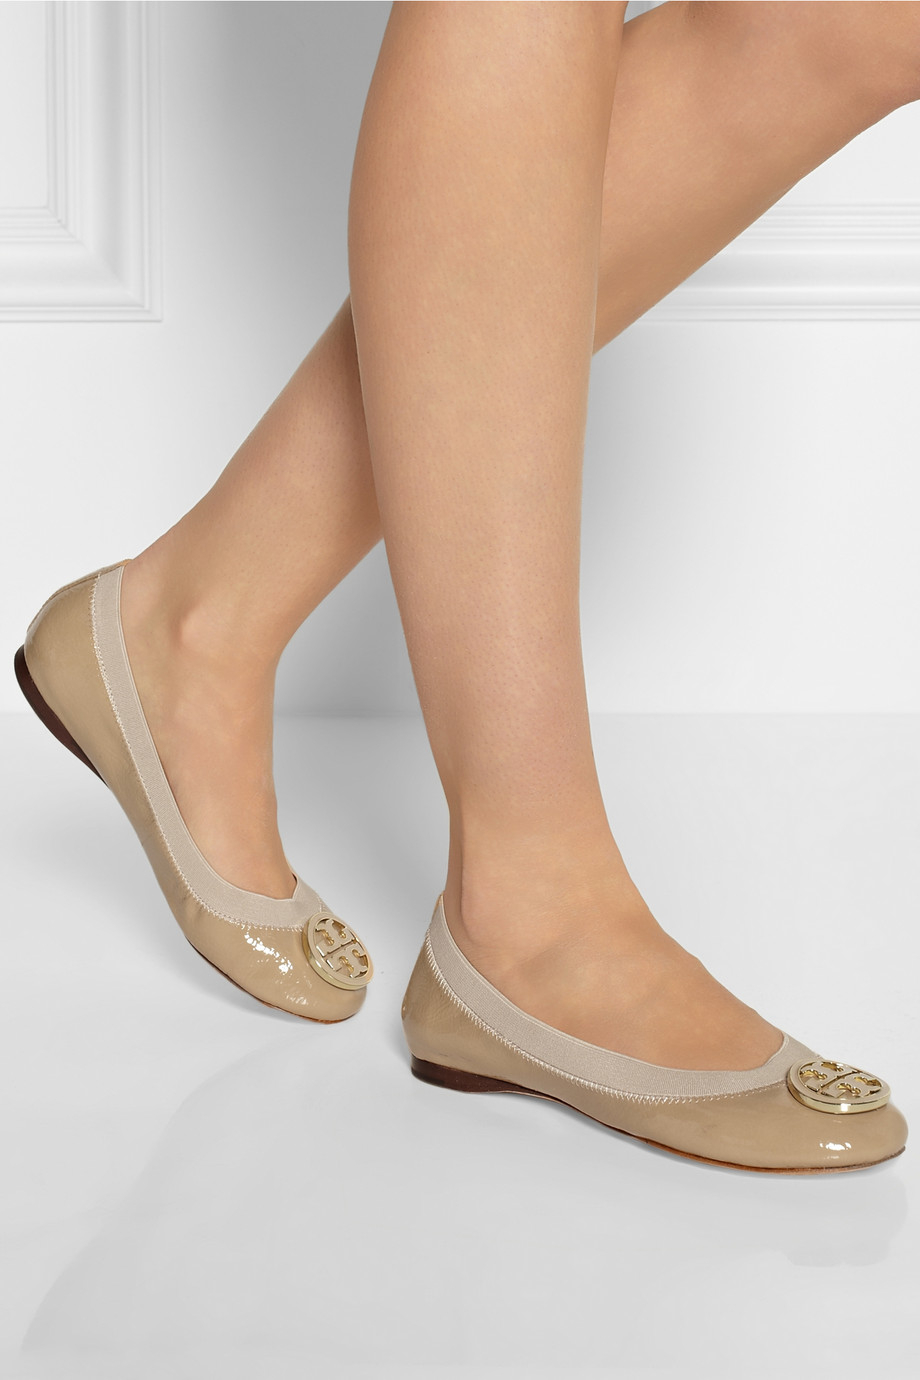 1fca4b48bf27 ... norway lyst tory burch caroline patentleather ballet flats in natural  2f8b0 10ecd